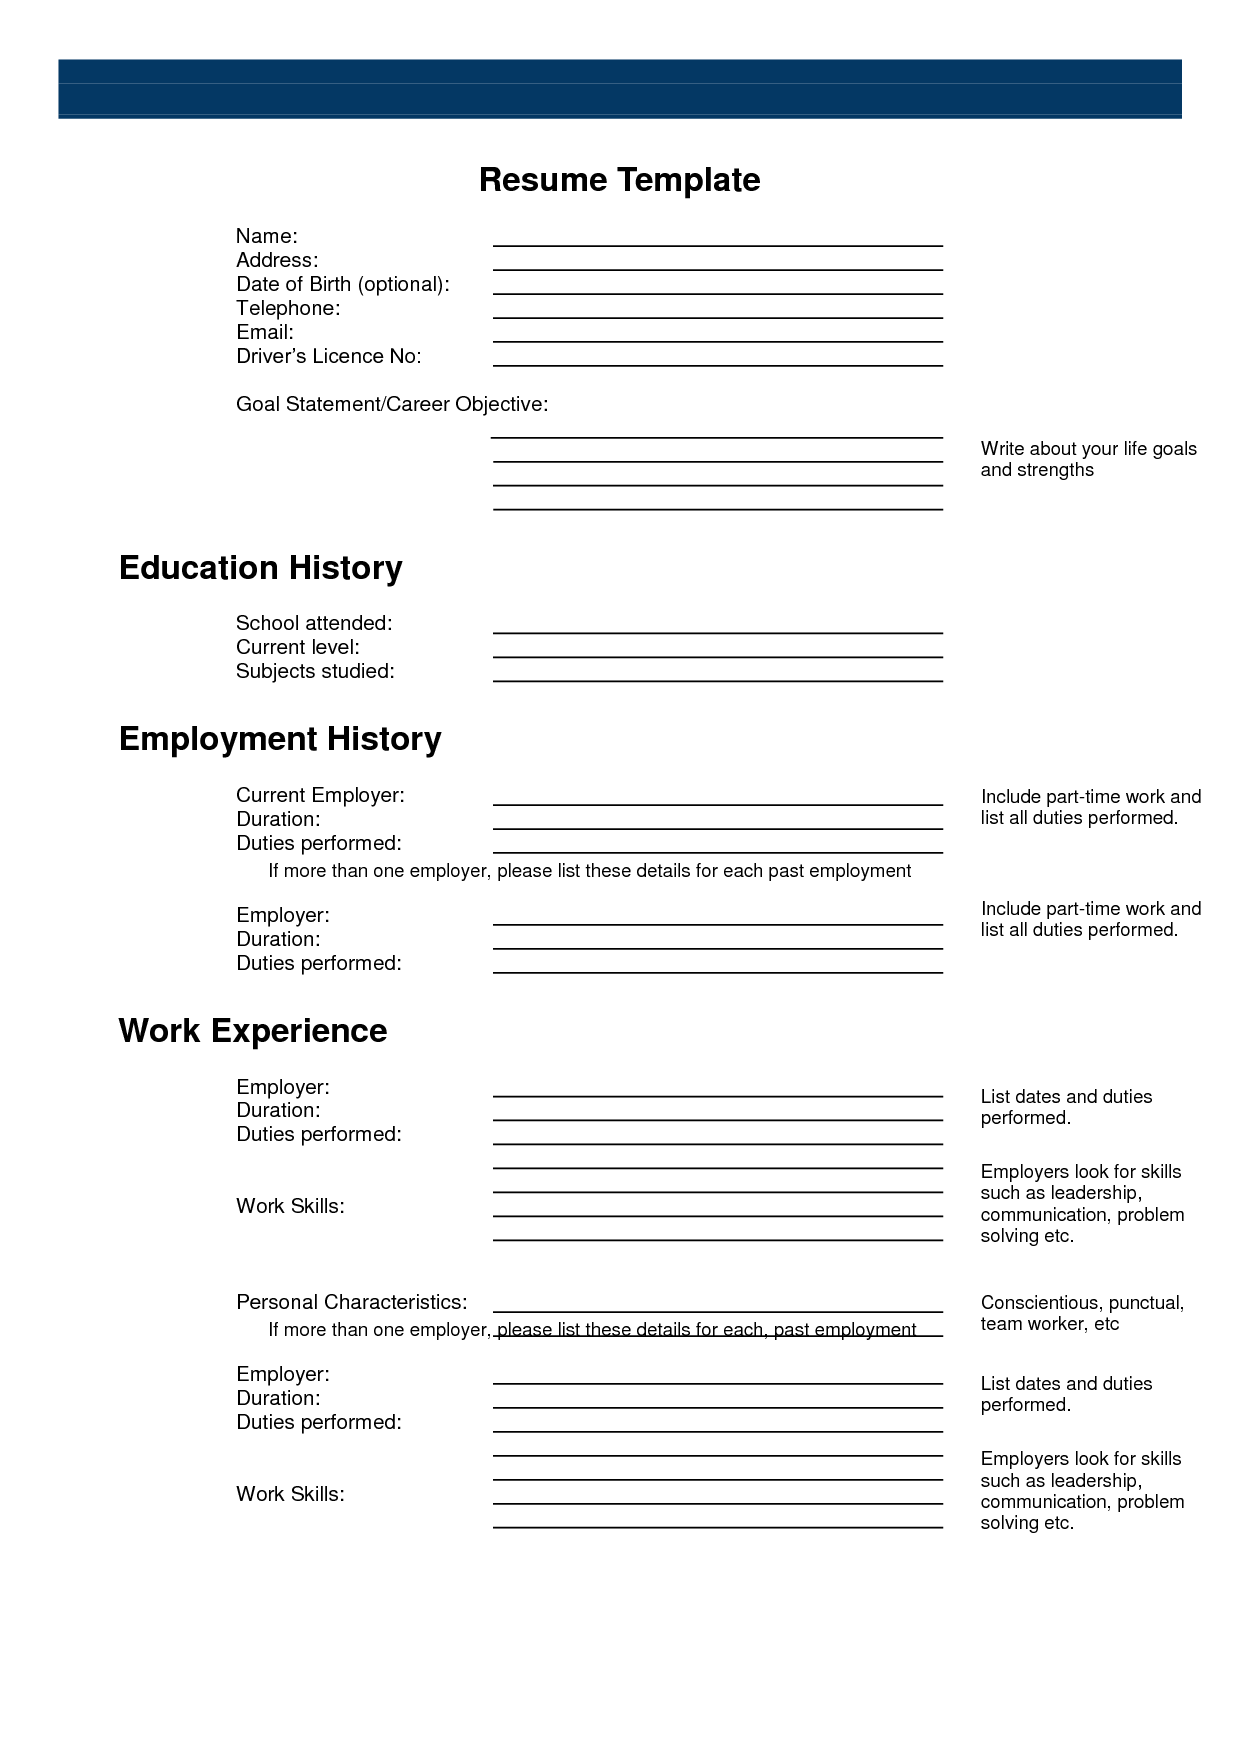 Resume Template Pinterest Free Printable Sample Resume Templates Http Www